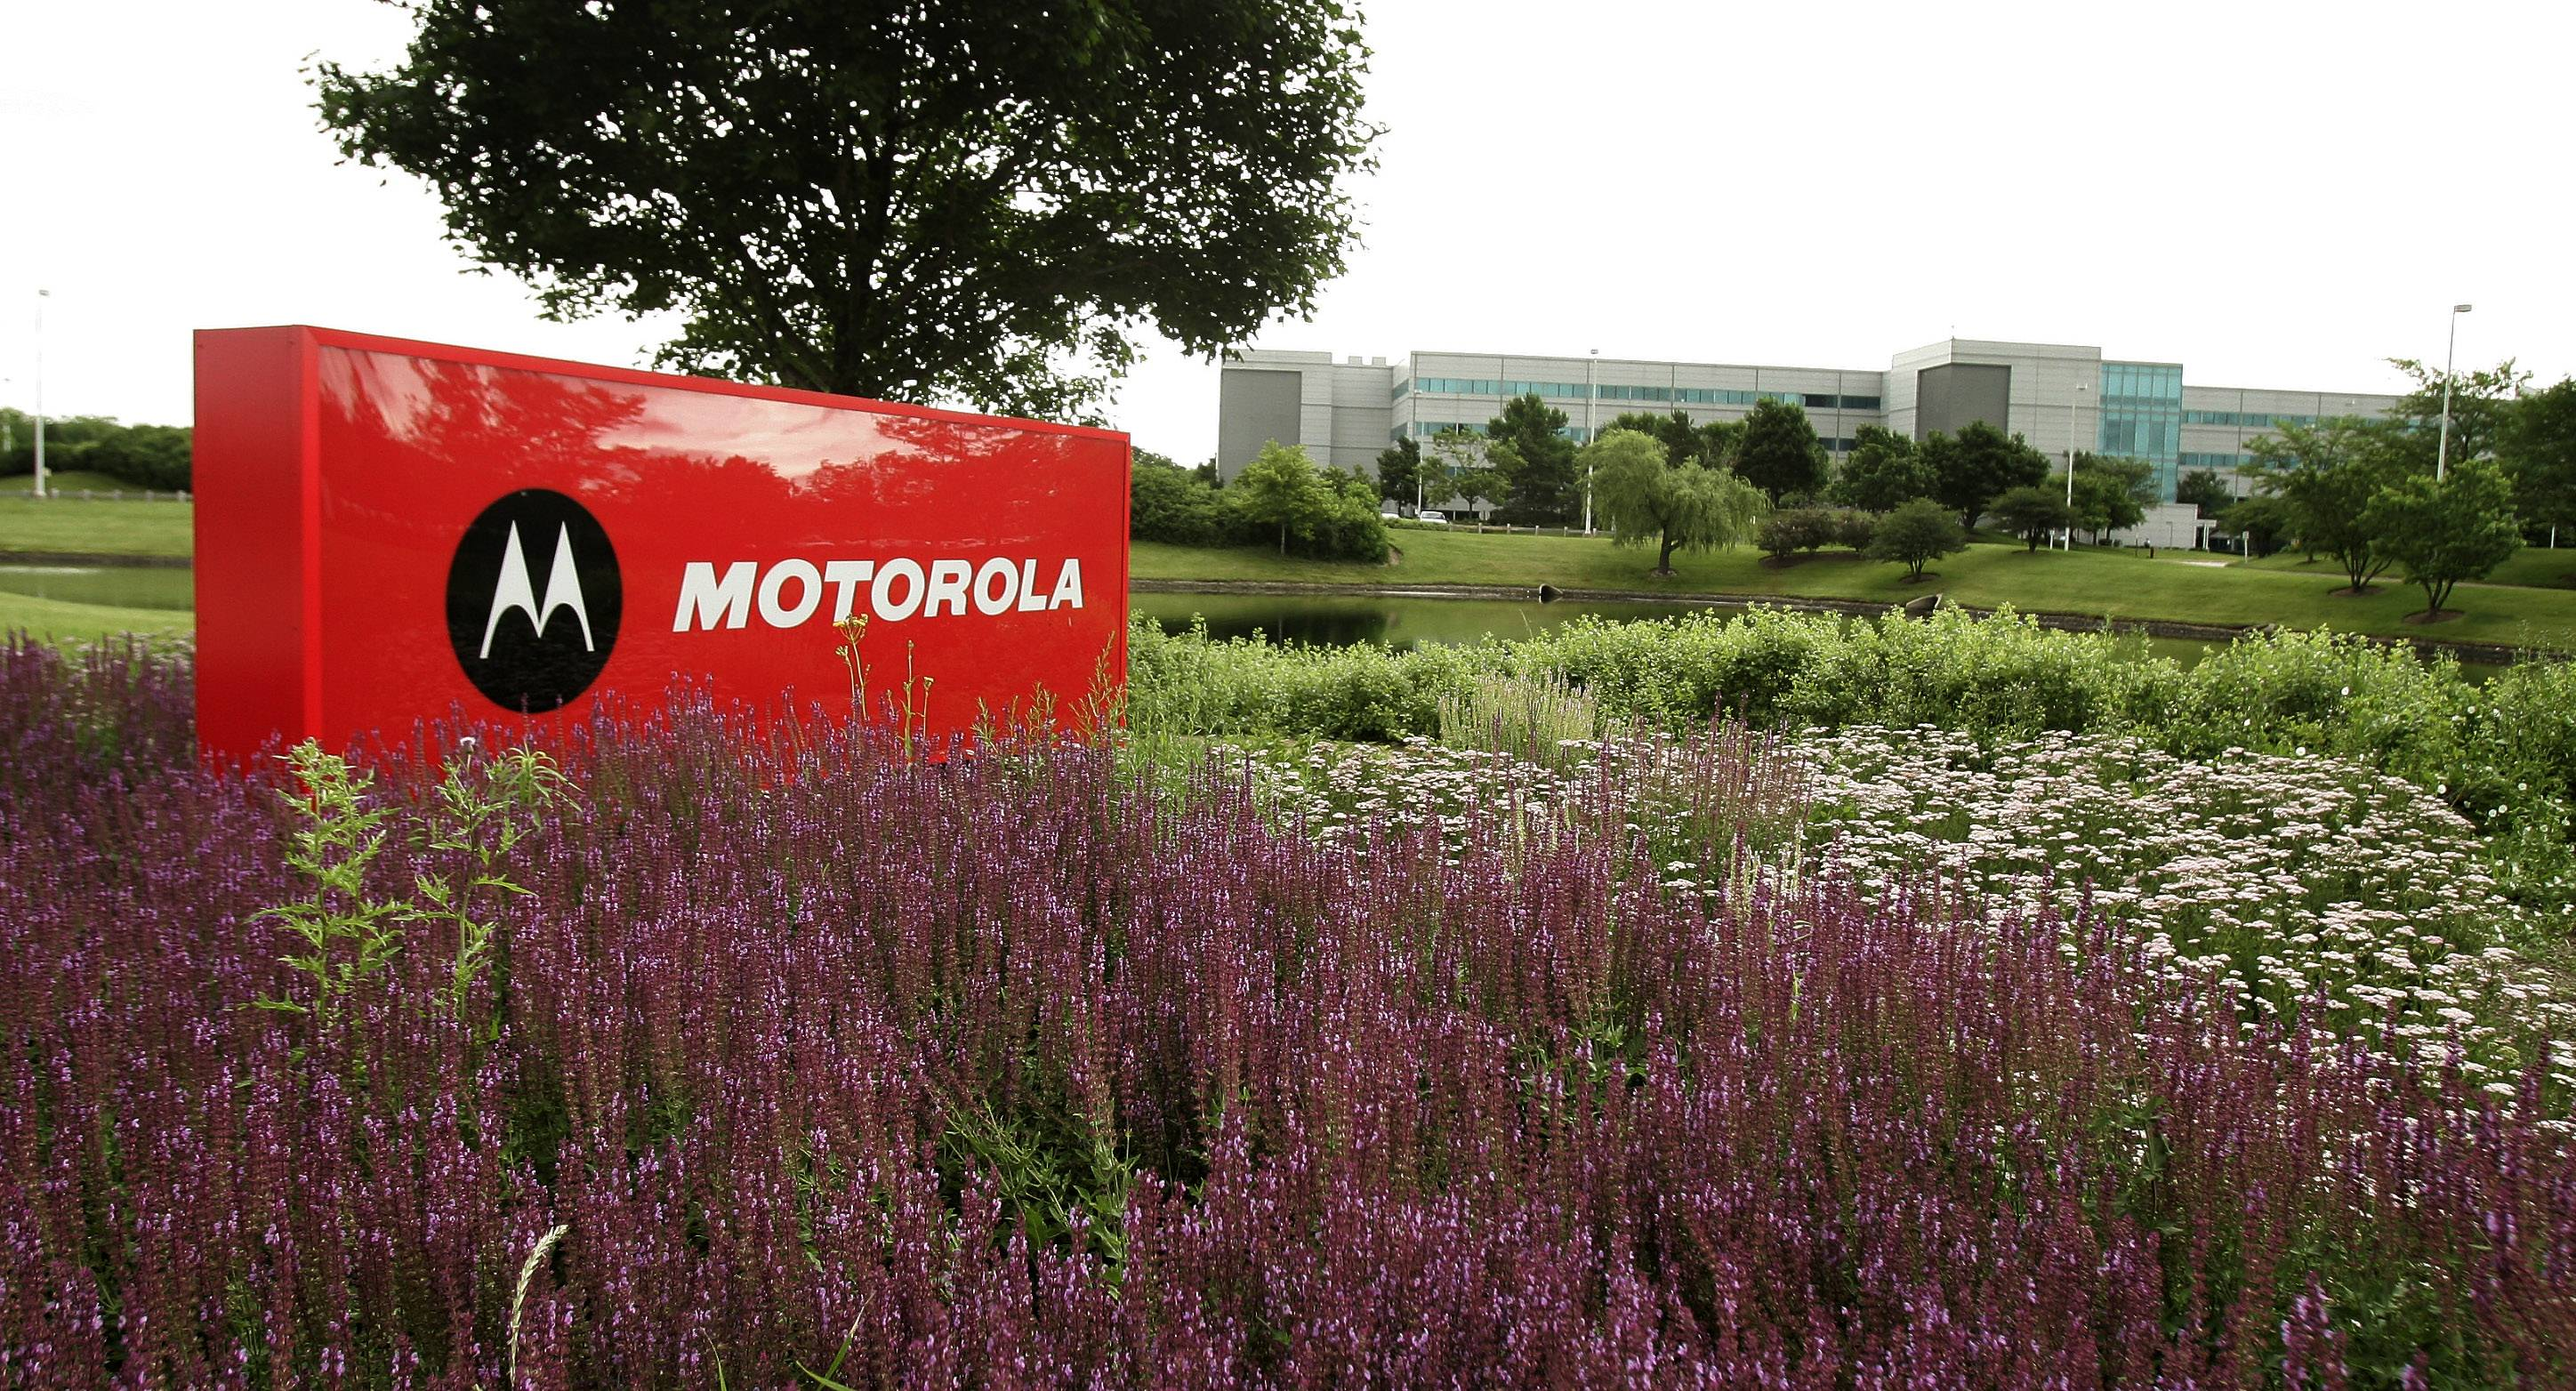 Motorola Mobility has left Libertyville for Chicago.